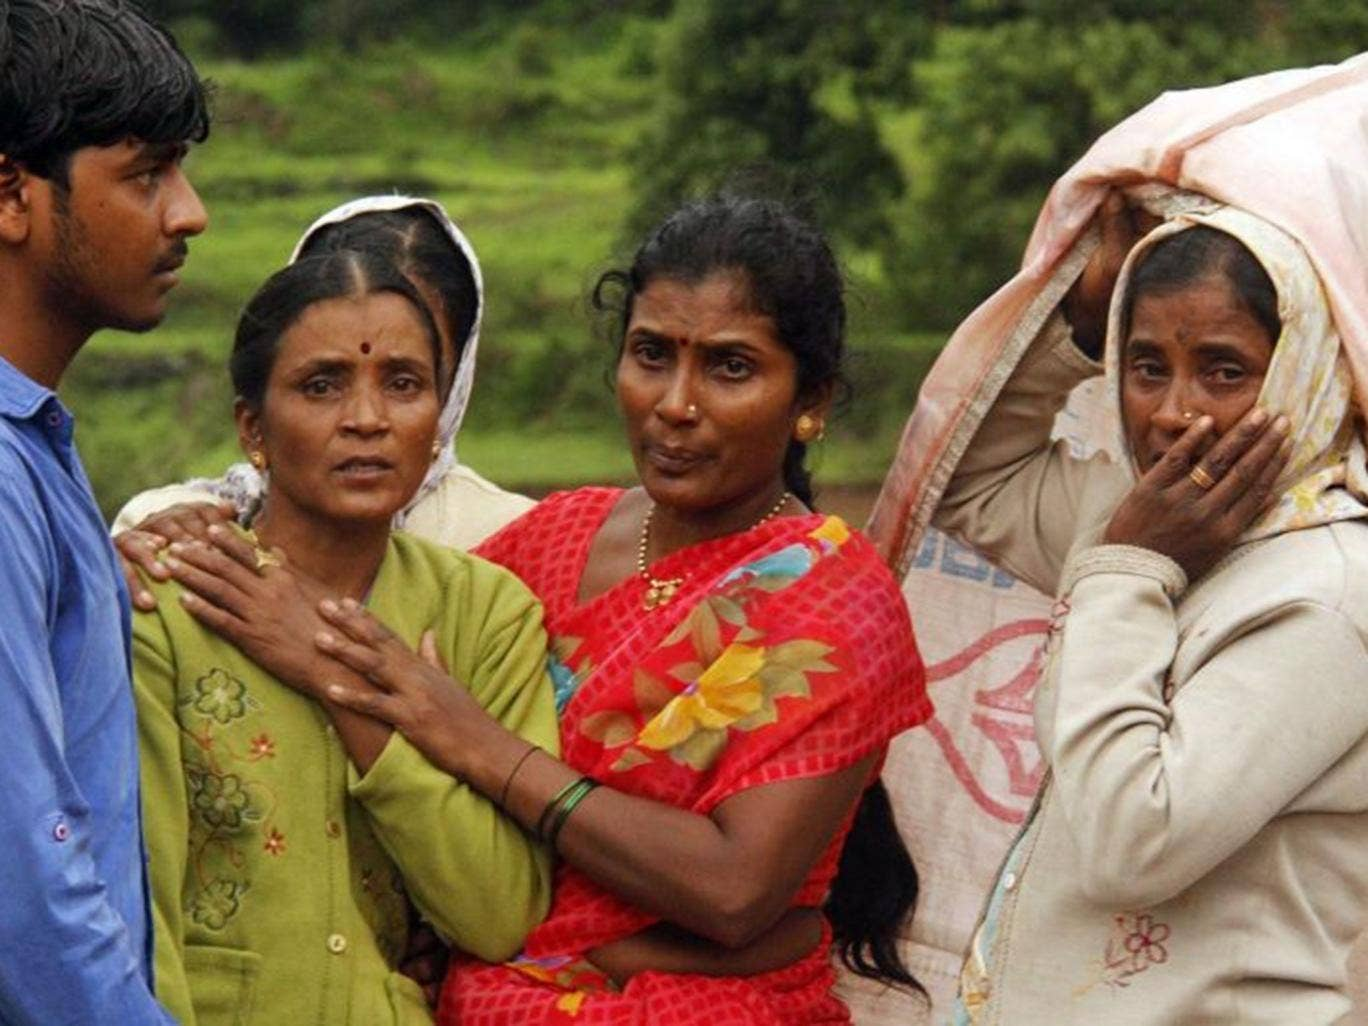 Villagers console each other as they watch a rescue operation at the site of a landslide in Malin village, in the western Indian state of Maharashtra, Wednesday, July 30, 2014.